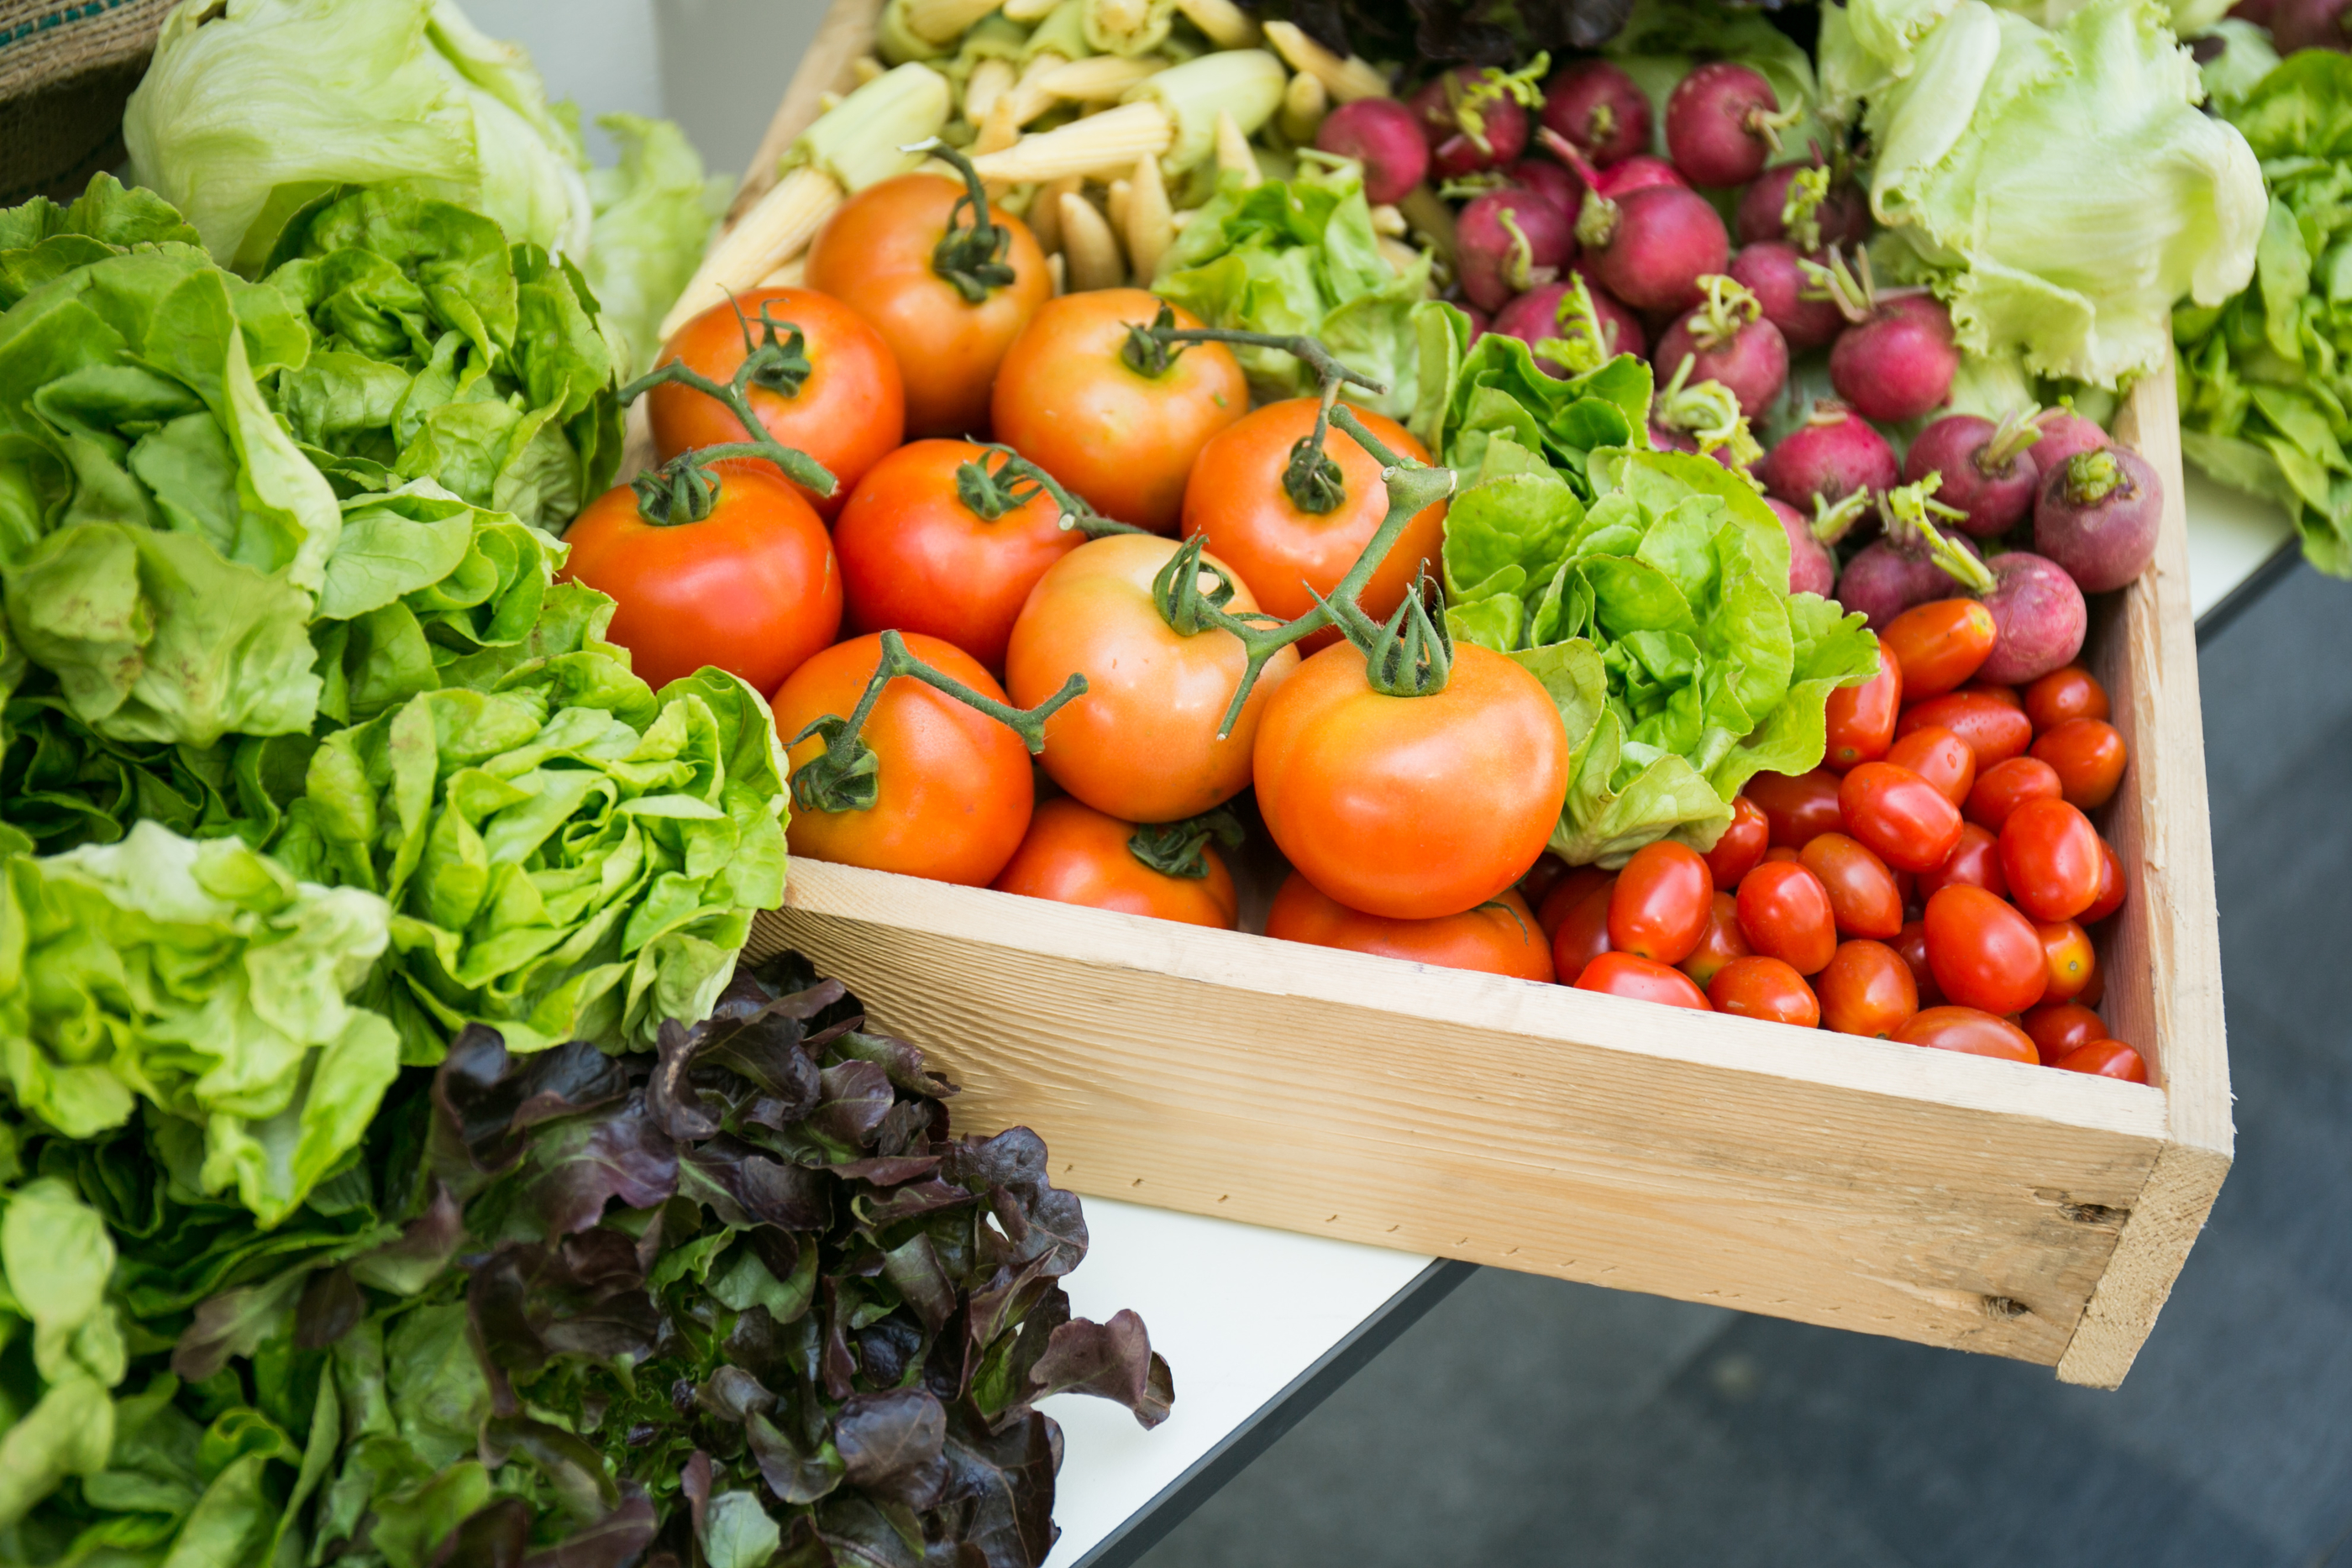 fresh vegetables-lettuce, tomatoes, radishes